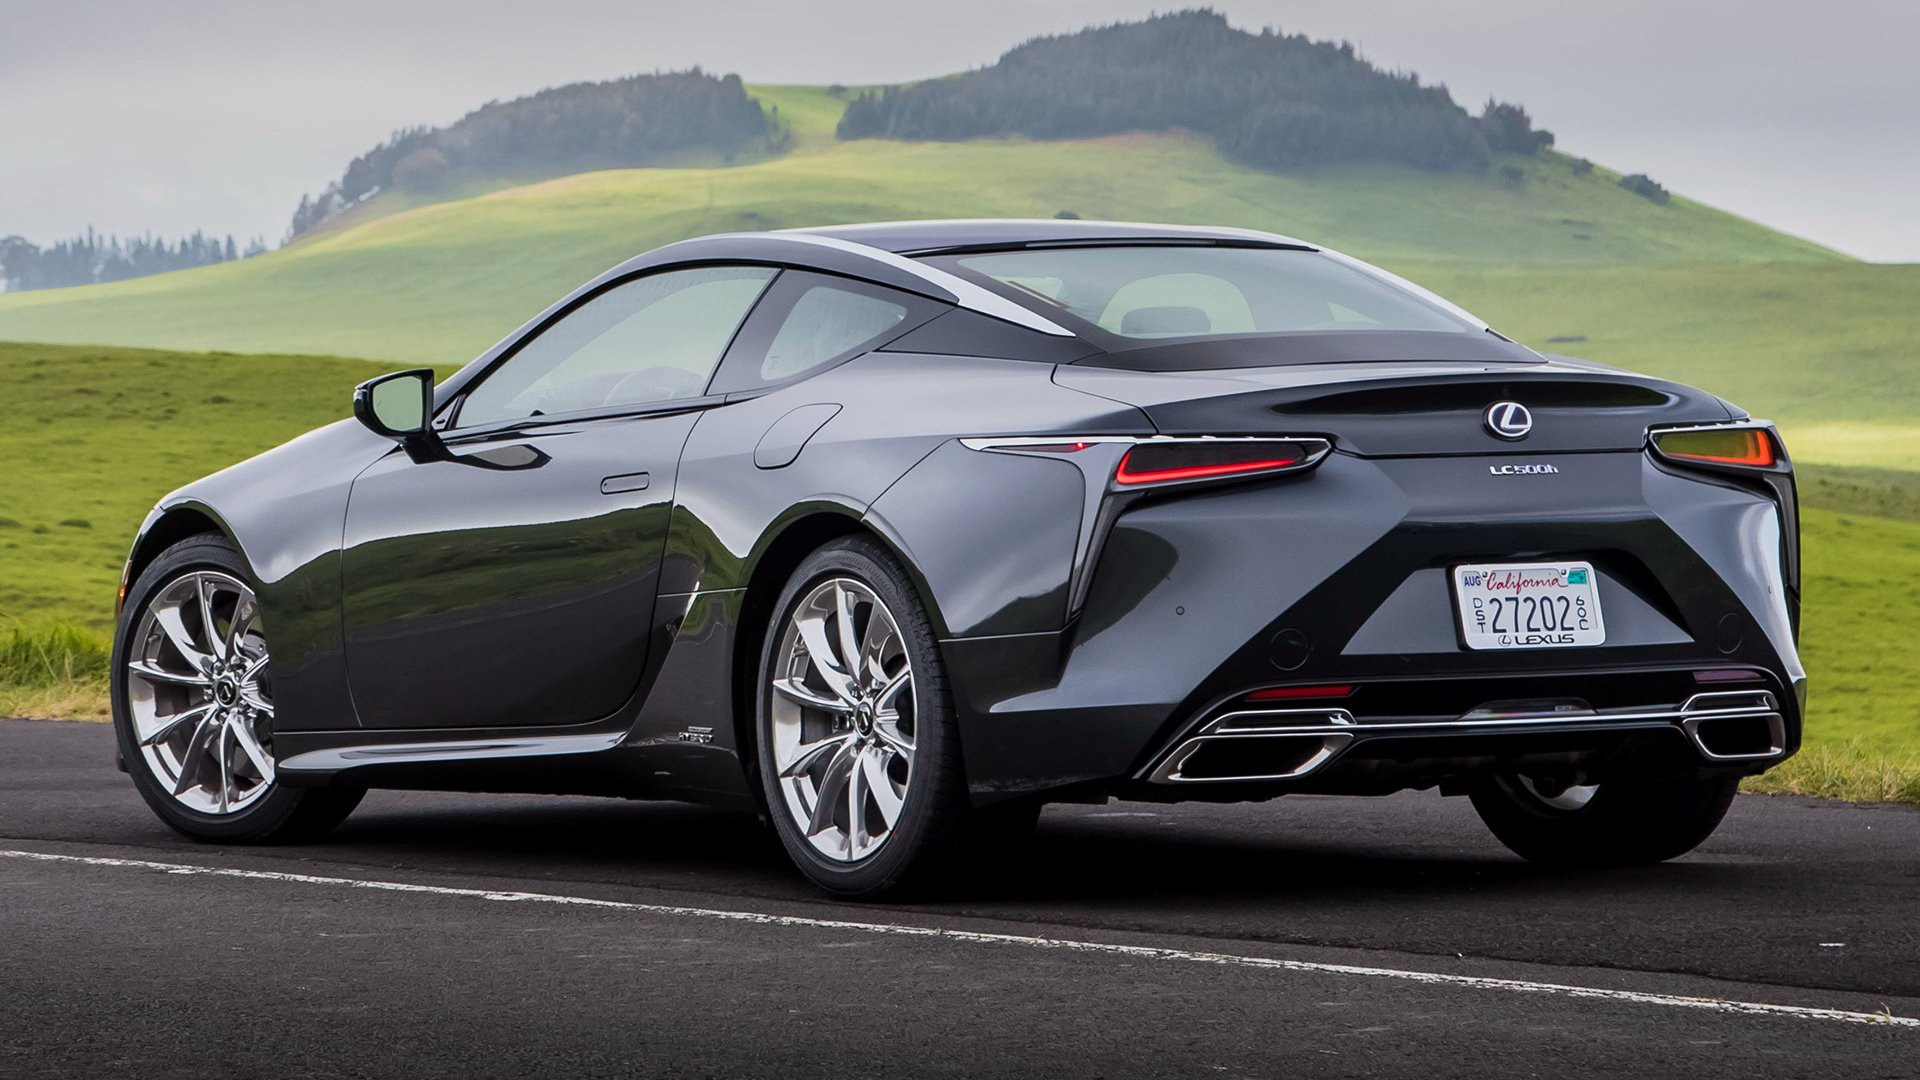 57 Lexus Lc 500 Hd Wallpapers Background Images Wallpaper Abyss